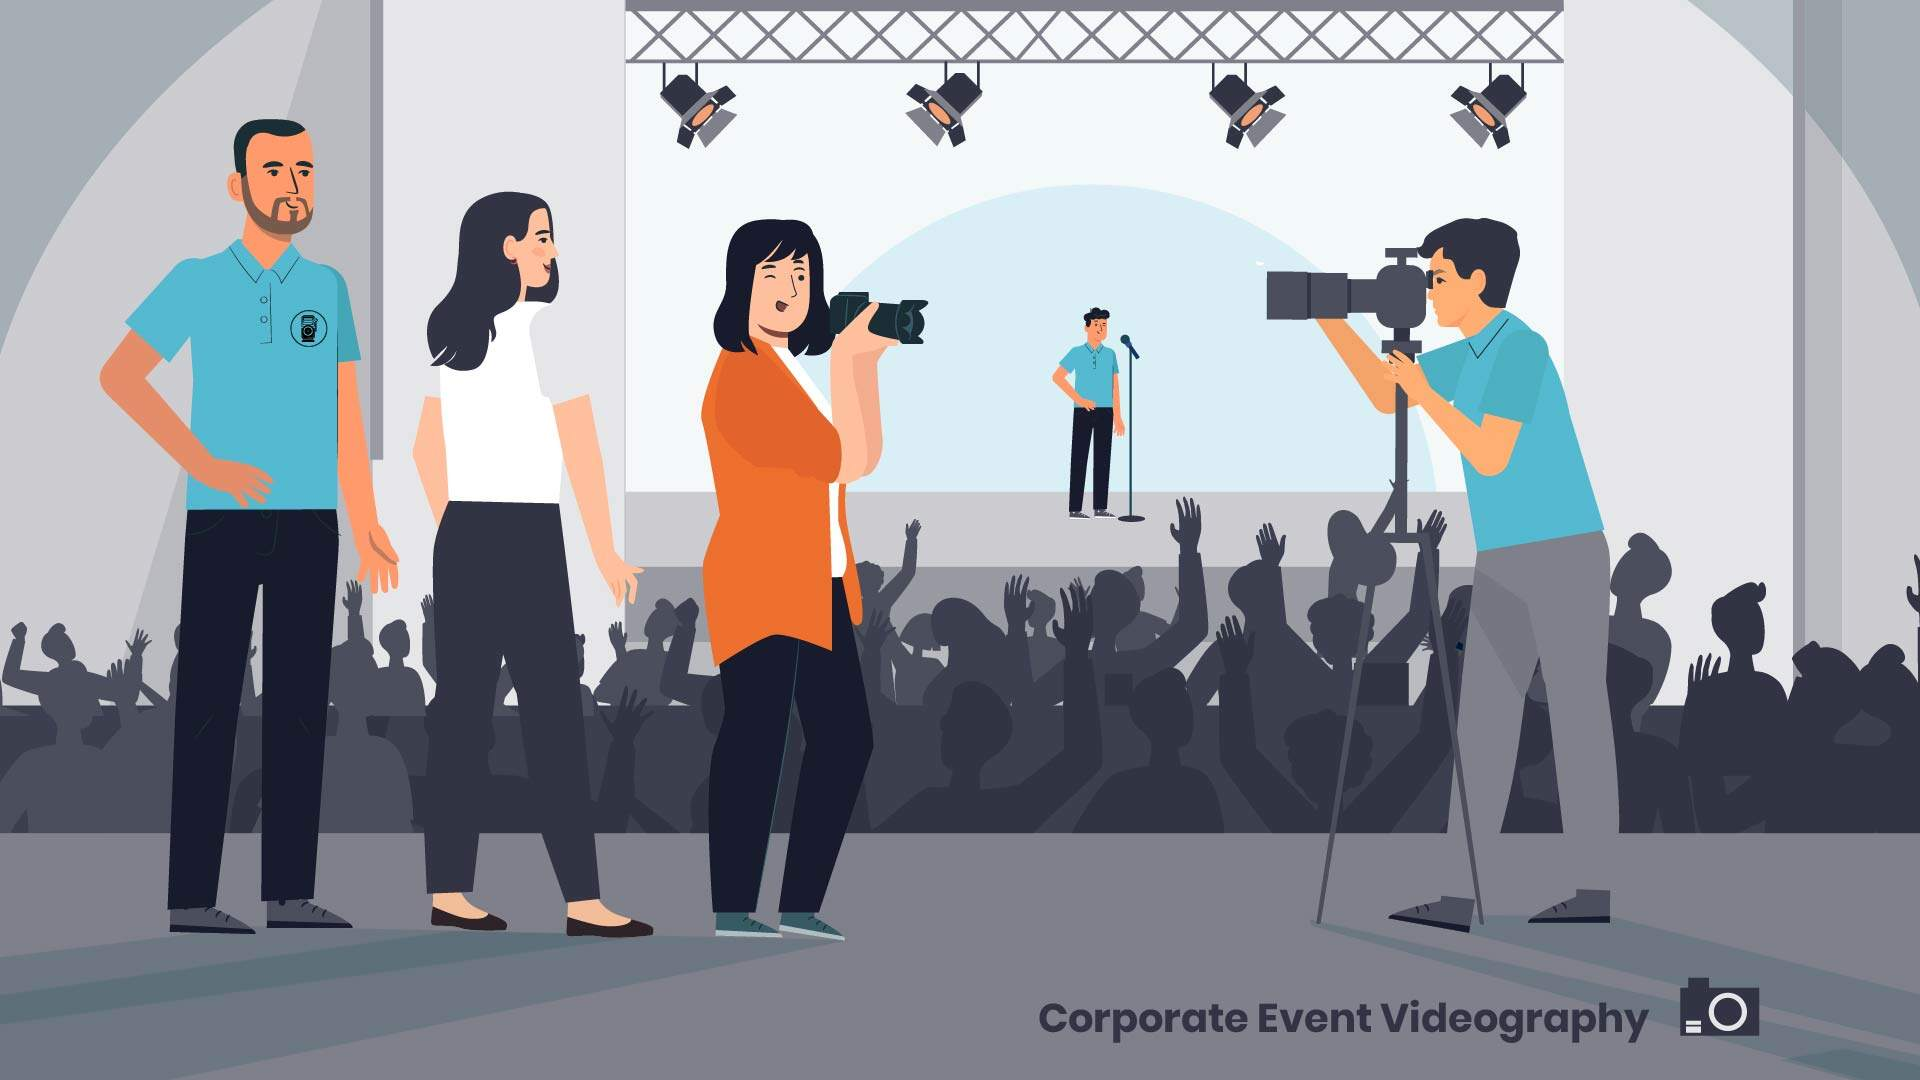 Professional photo and video shooting of the event - amination video with animation of the characters